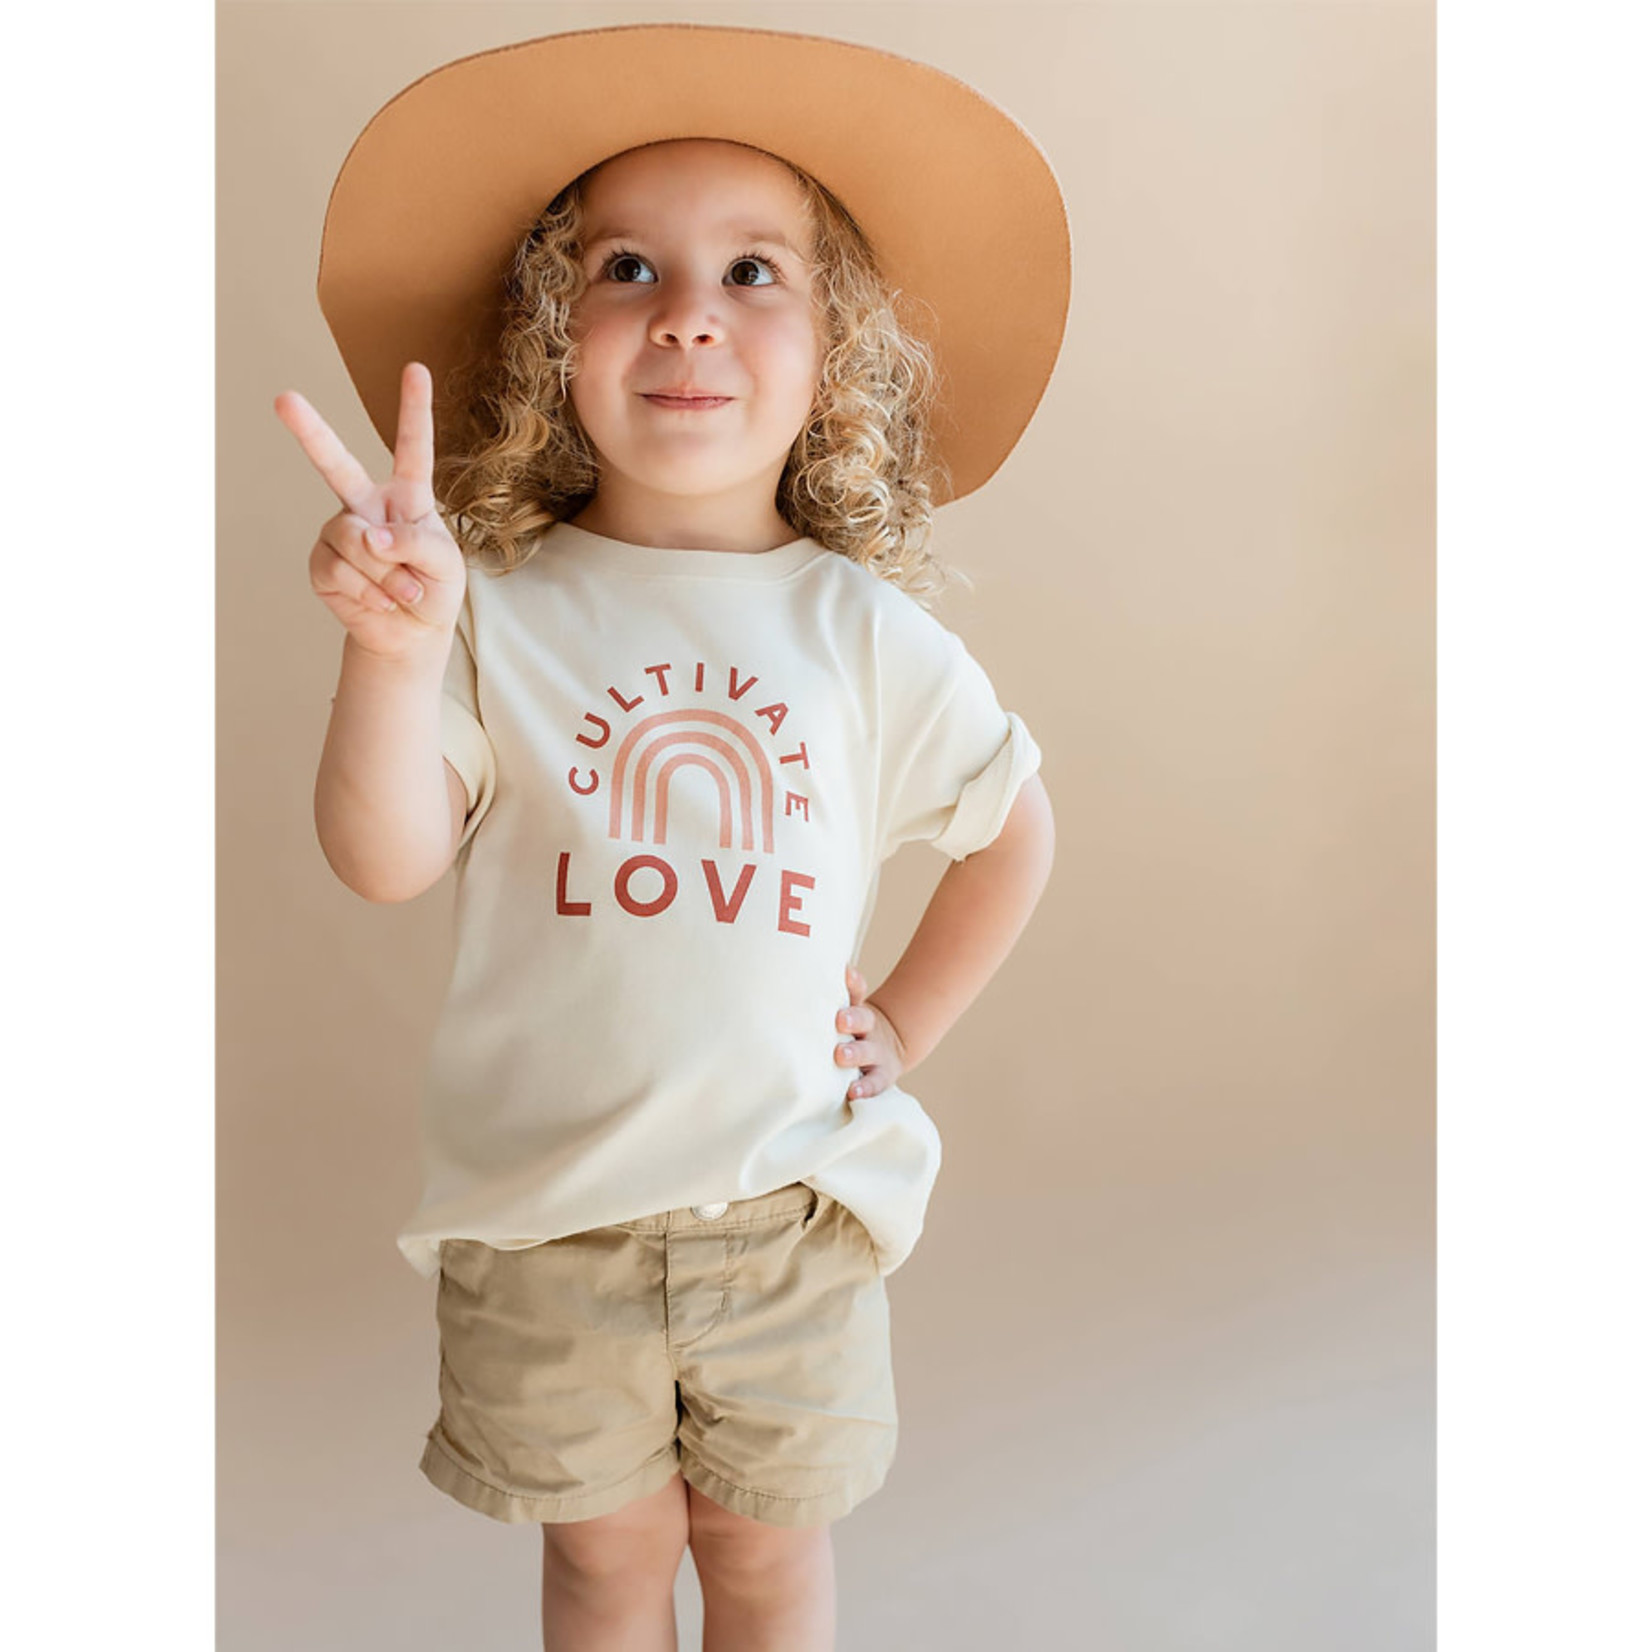 Polished Prints Cultivate Love Toddler Tee